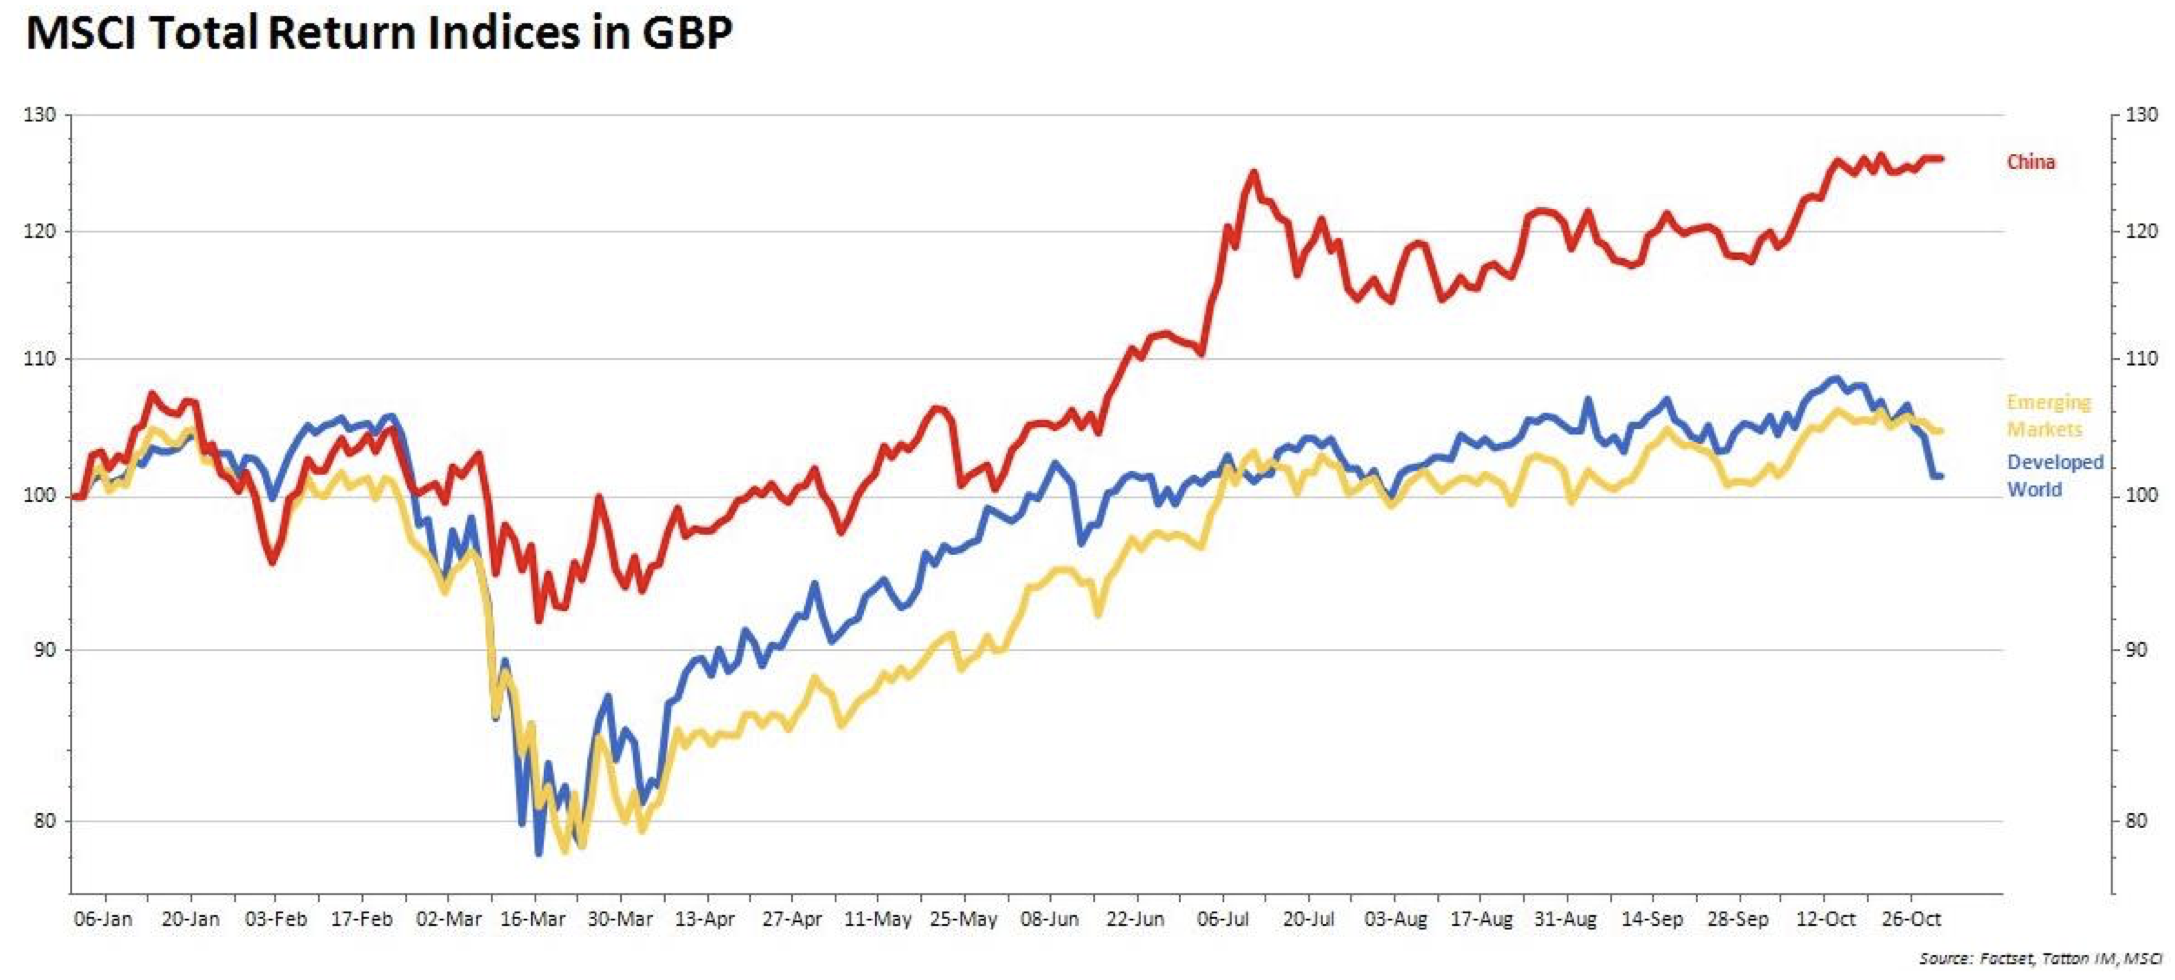 MSCI Total Return Indices in GBP